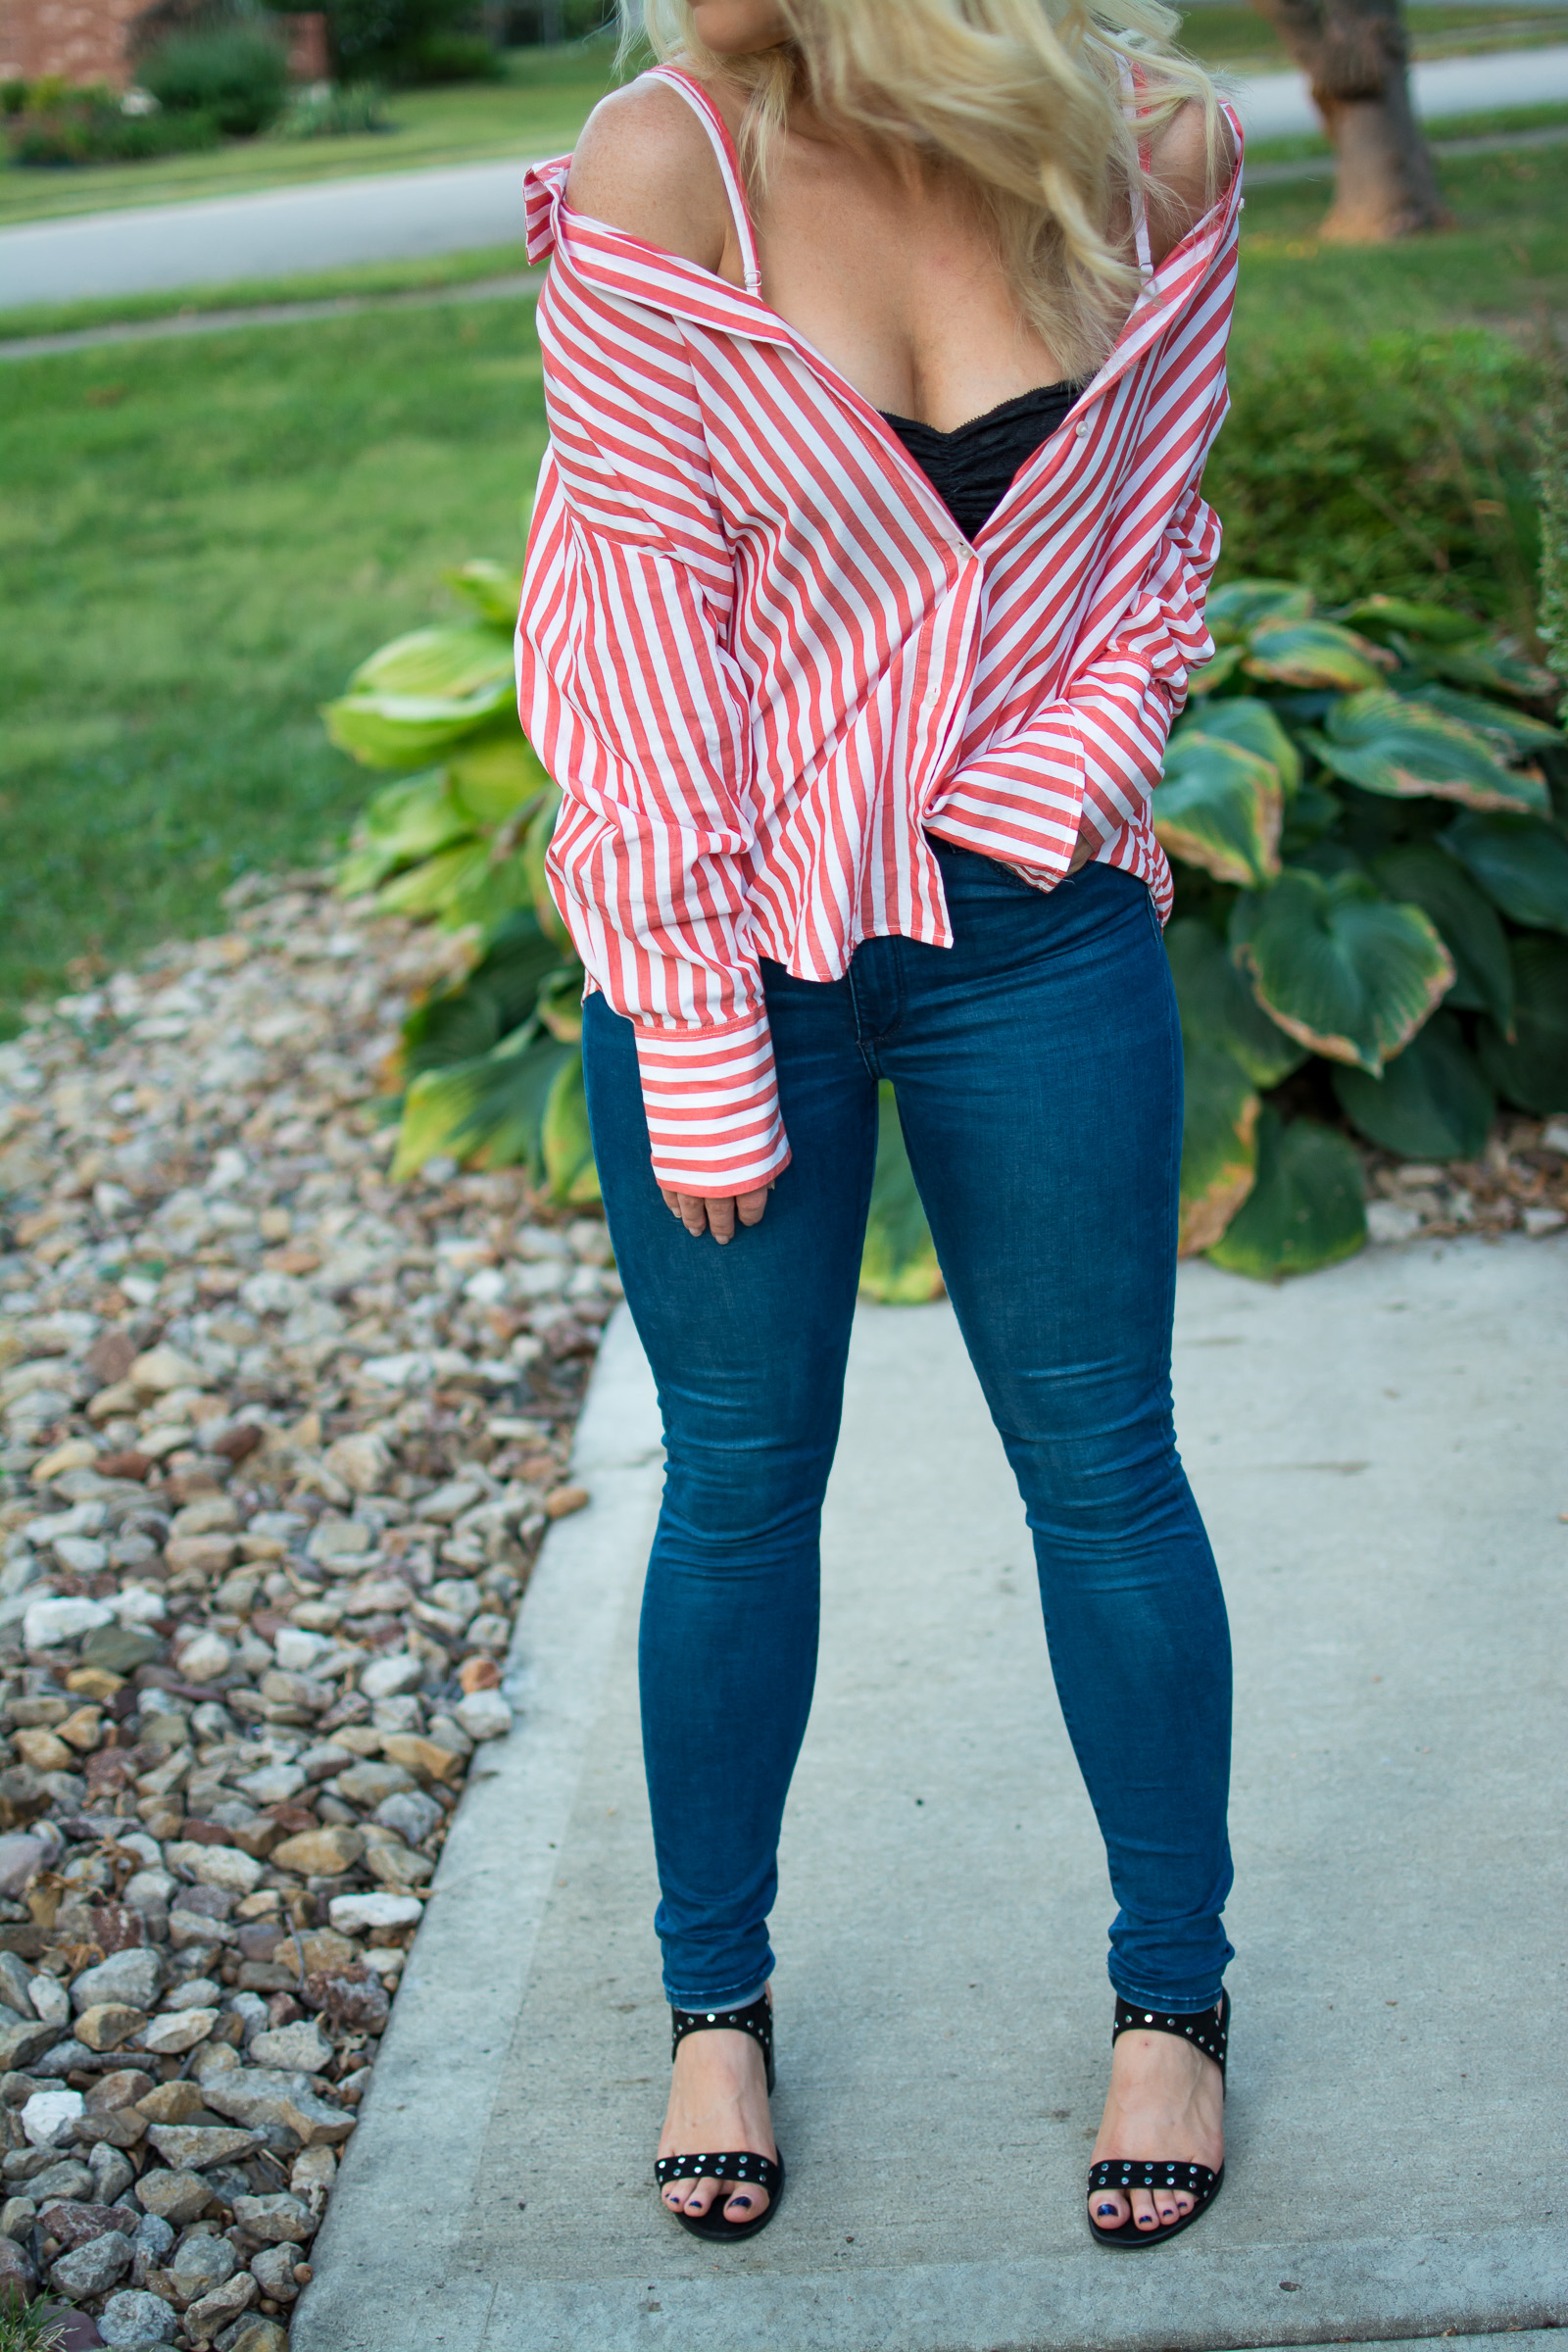 Wearing a Striped Button-up Off-the-Shoulder. | Ashley from LSR